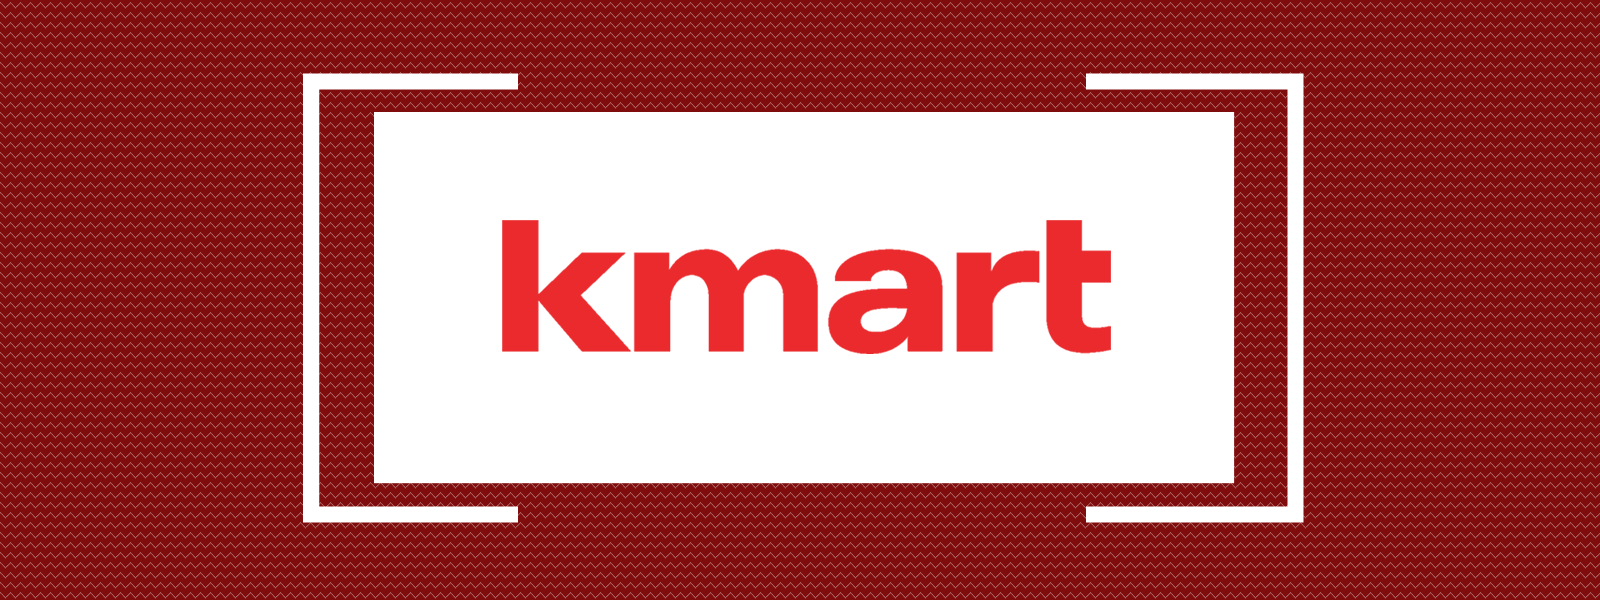 kmart integration